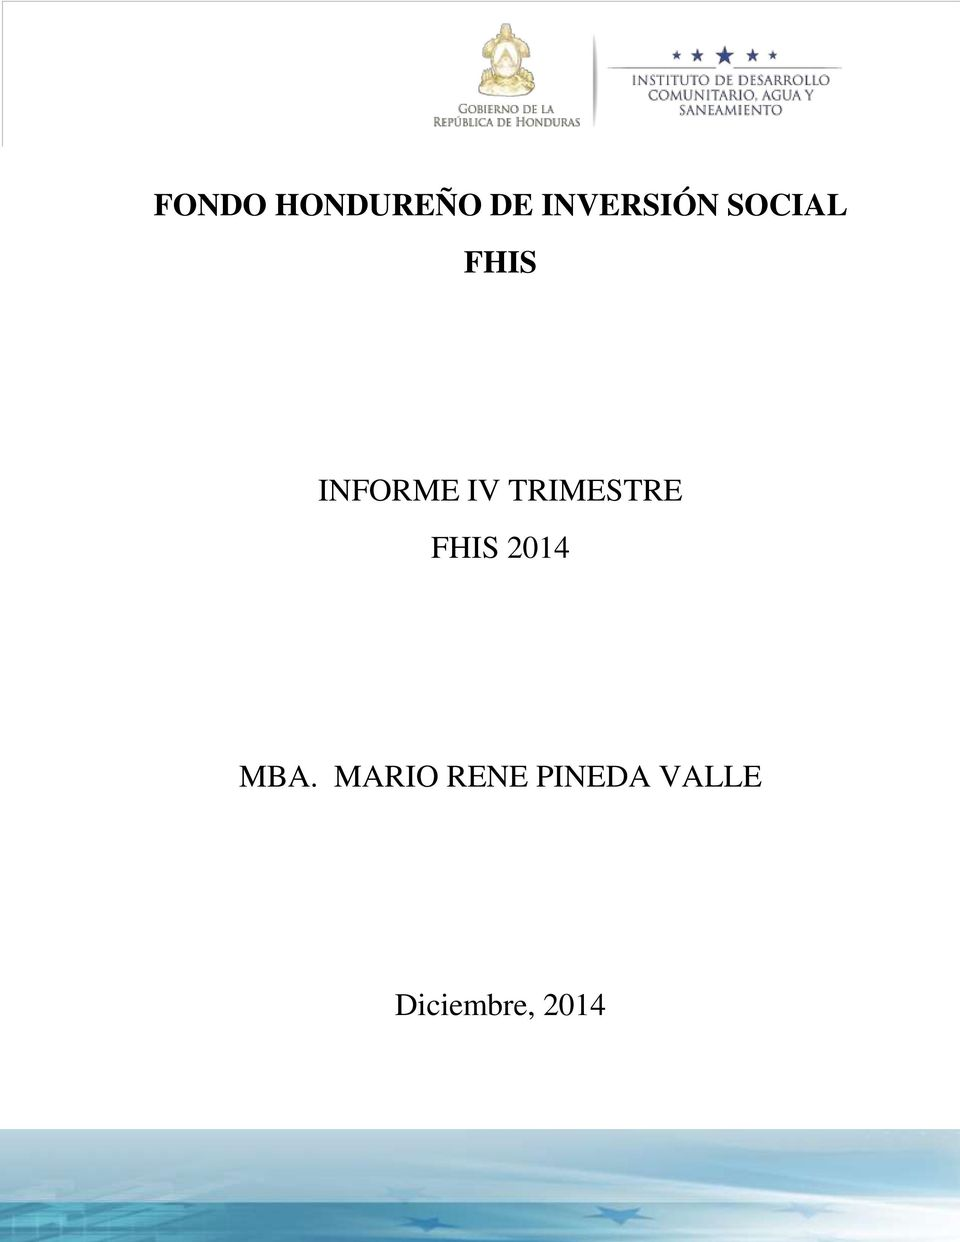 TRIMESTRE FHIS 2014 MBA.